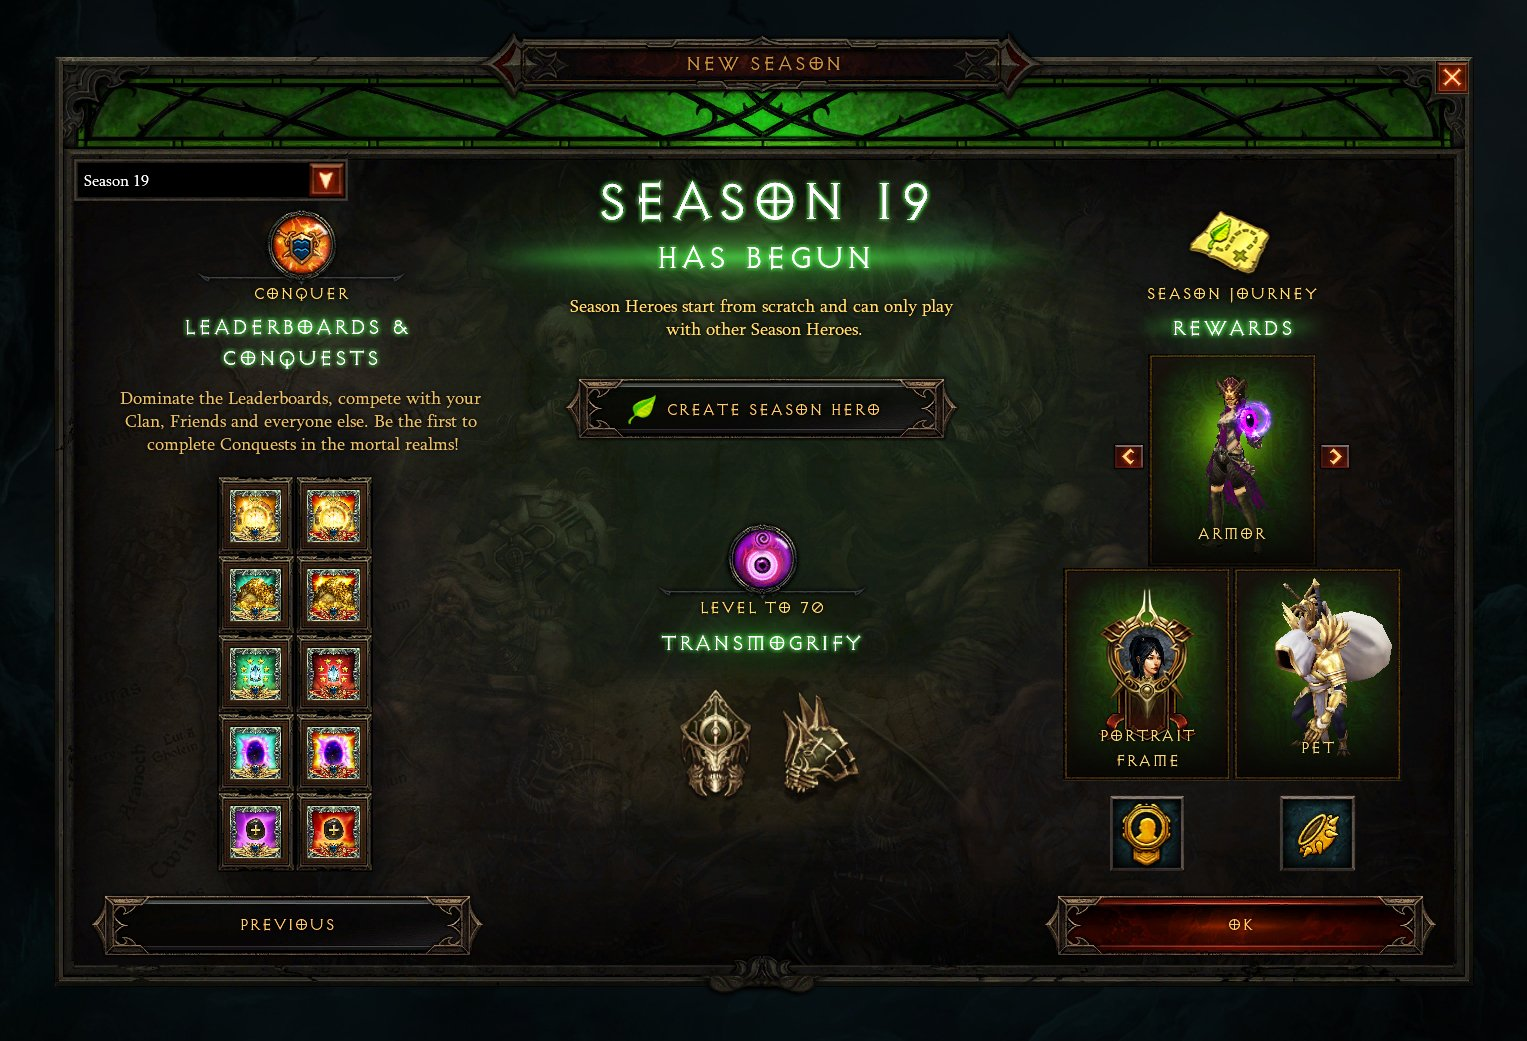 Temporada 19 Recompensas Diablo III